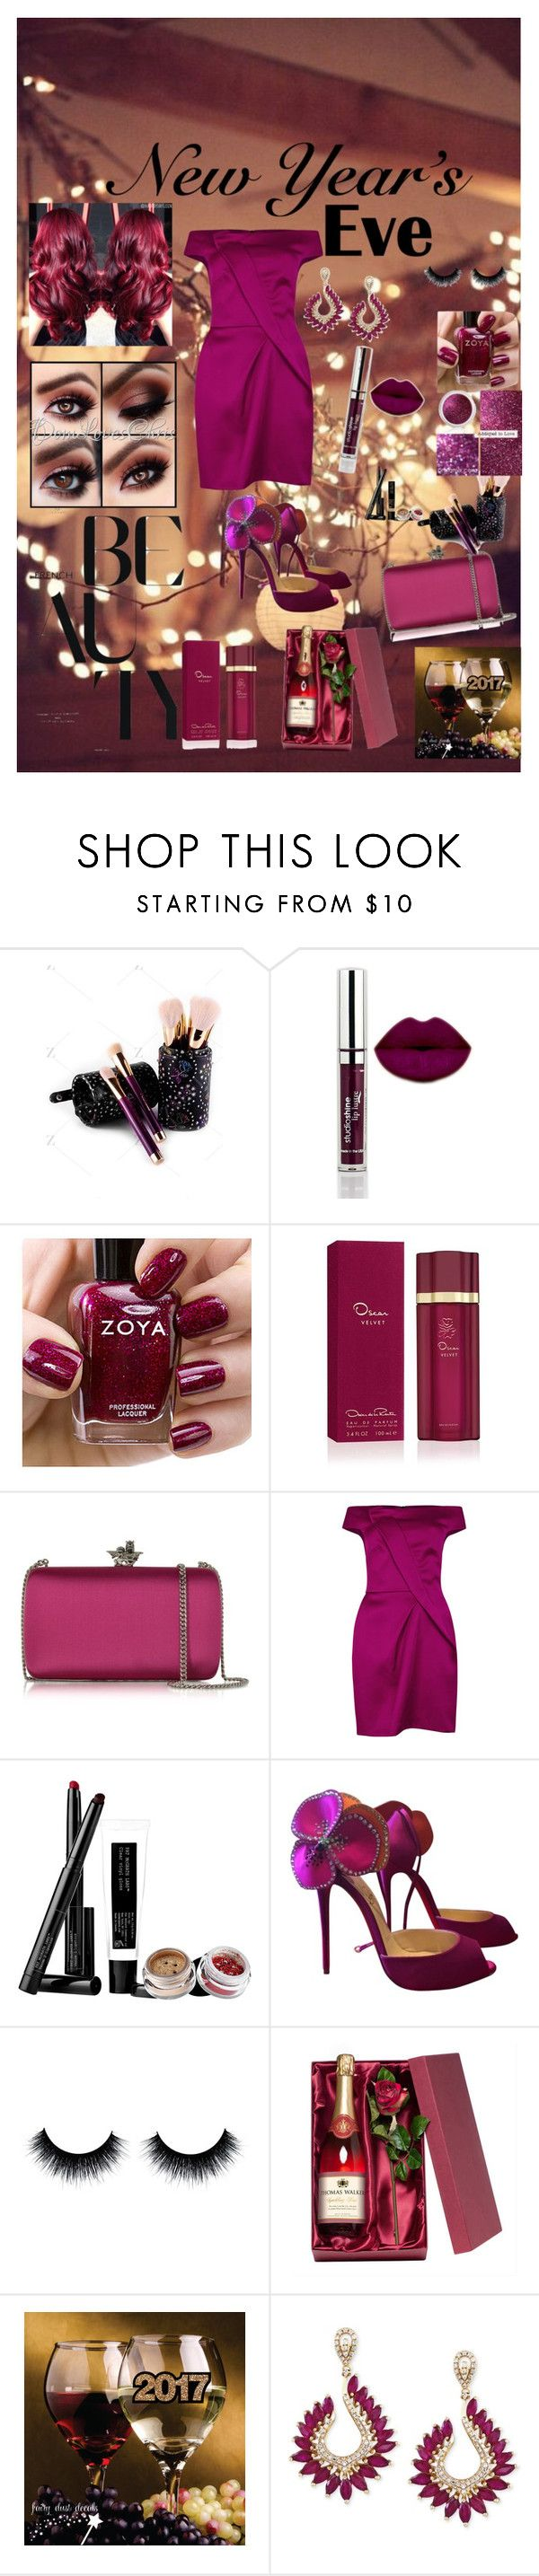 """New Years Eve Beauty"" by marlaj-50 ❤ liked on Polyvore featuring beauty, Zoya, Oscar de la Renta, Roberto Cavalli, Roland Mouret, Pat McGrath, Christian Louboutin and Effy Jewelry"